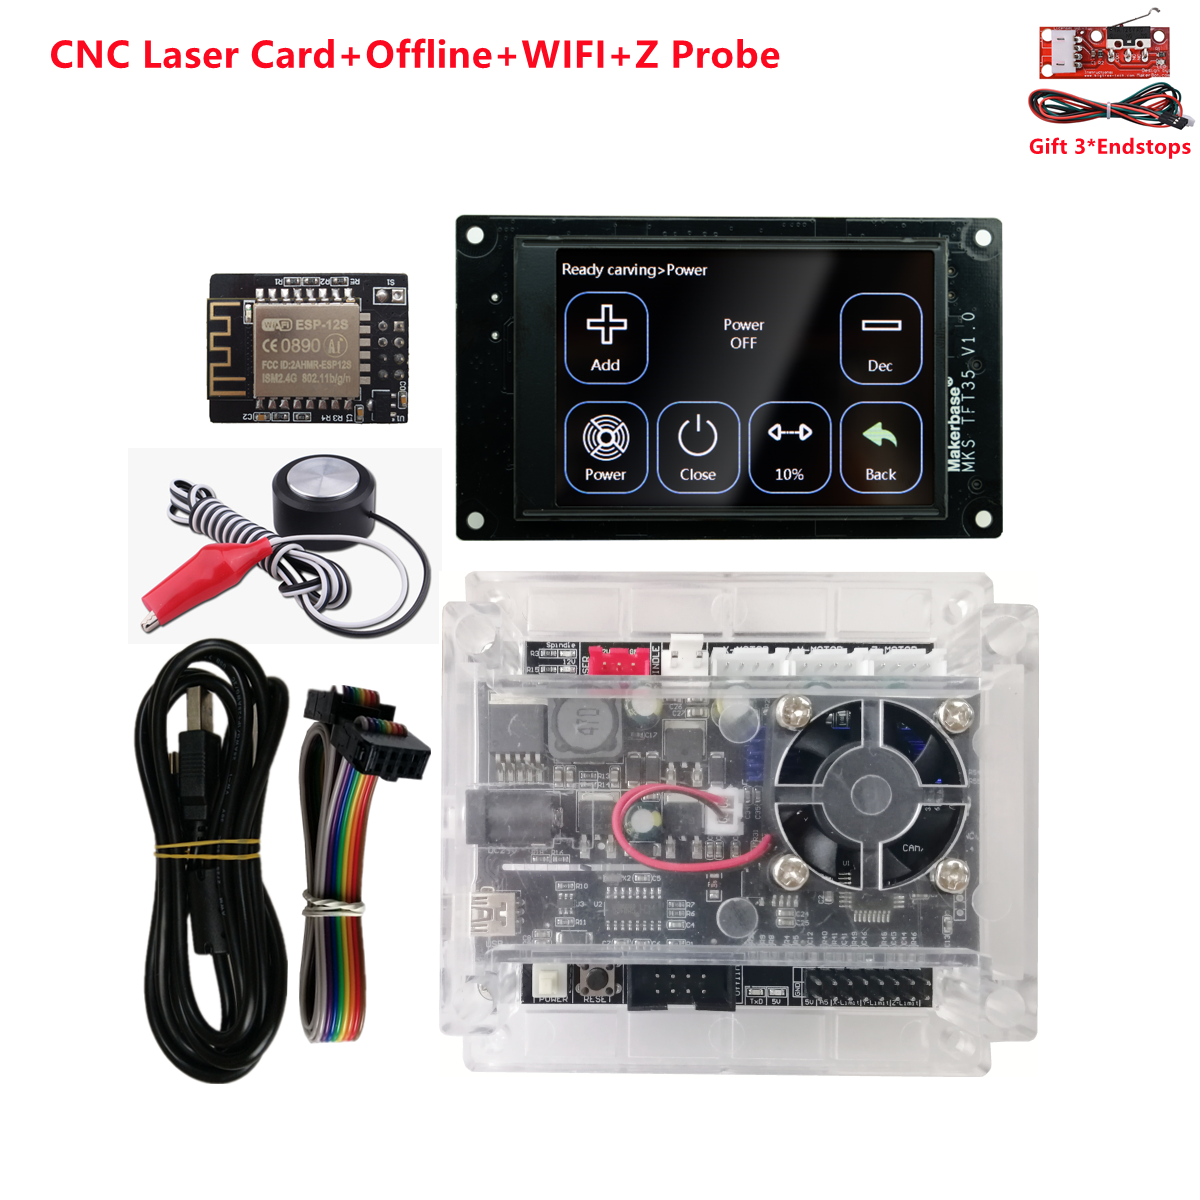 GRBL CNC laser engraving kit 3018 pro OFFLINE controllers MKS TFT 35 display 3 axis USB driver control board cnc machine parts